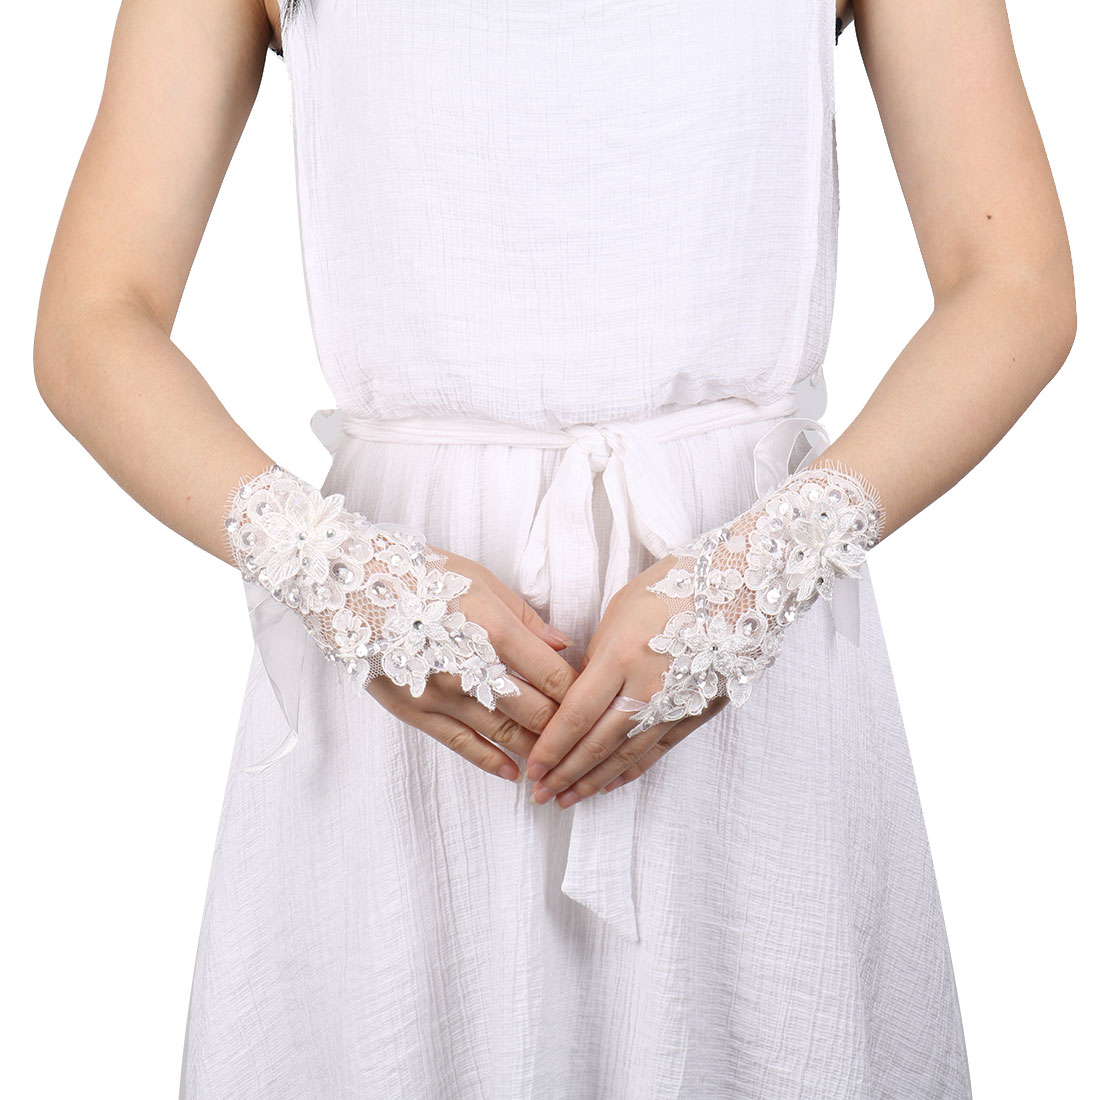 Lady Flower Style Bridesmaid Wrist Decor Lace Fingerless Glove 16.3 x 13cm Pair